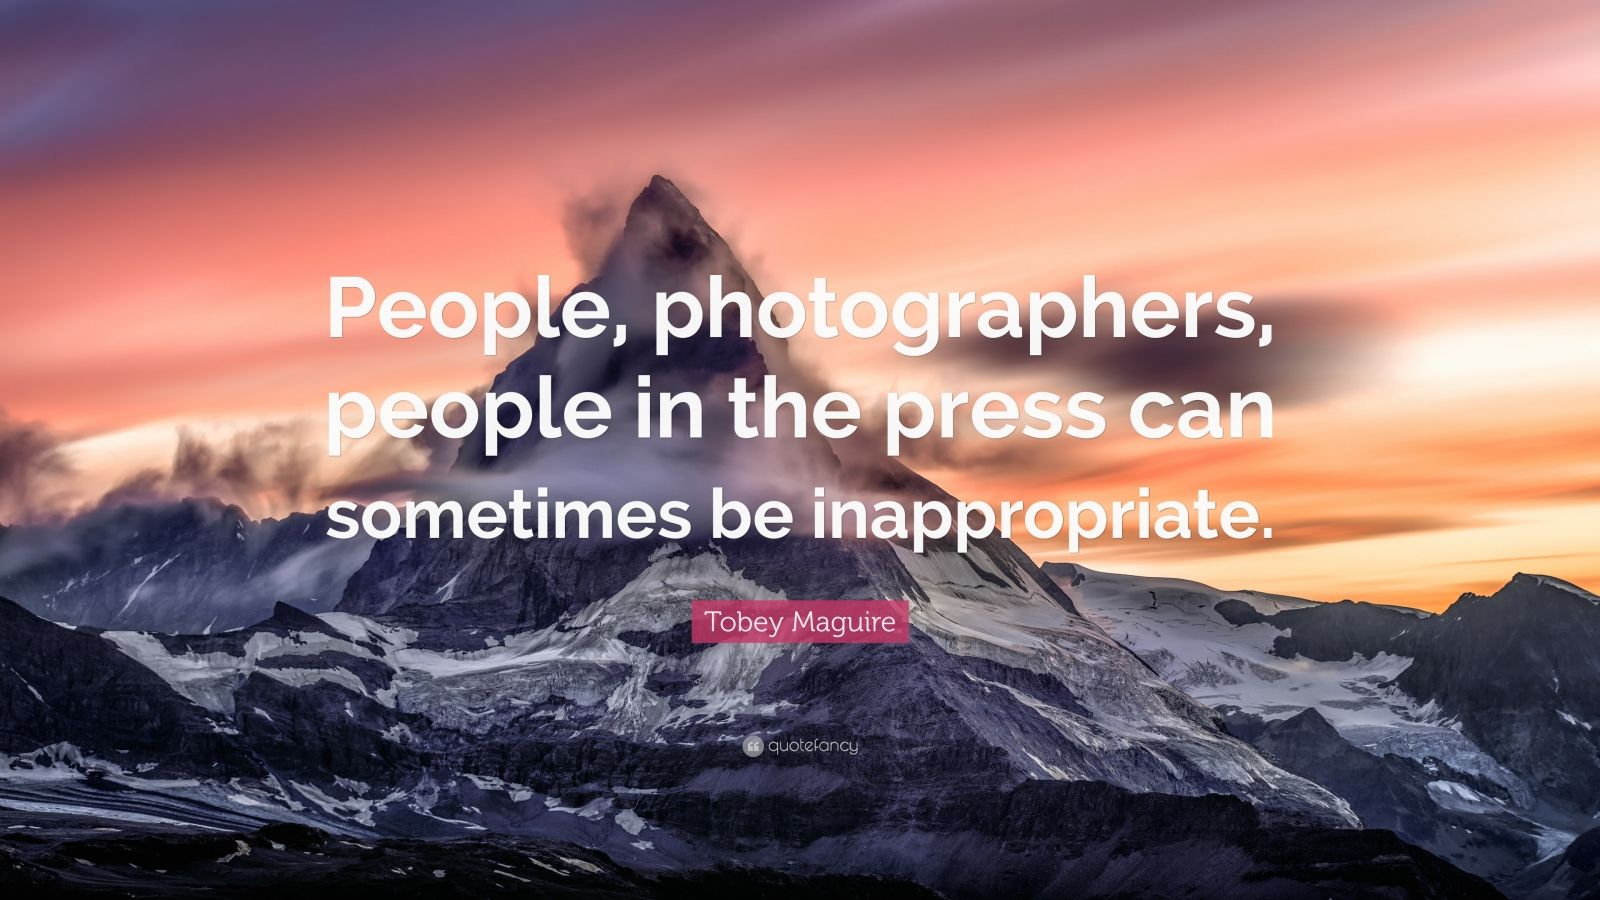 Tobey Maguire Quote People Photographers In The Press Can Sometimes Be